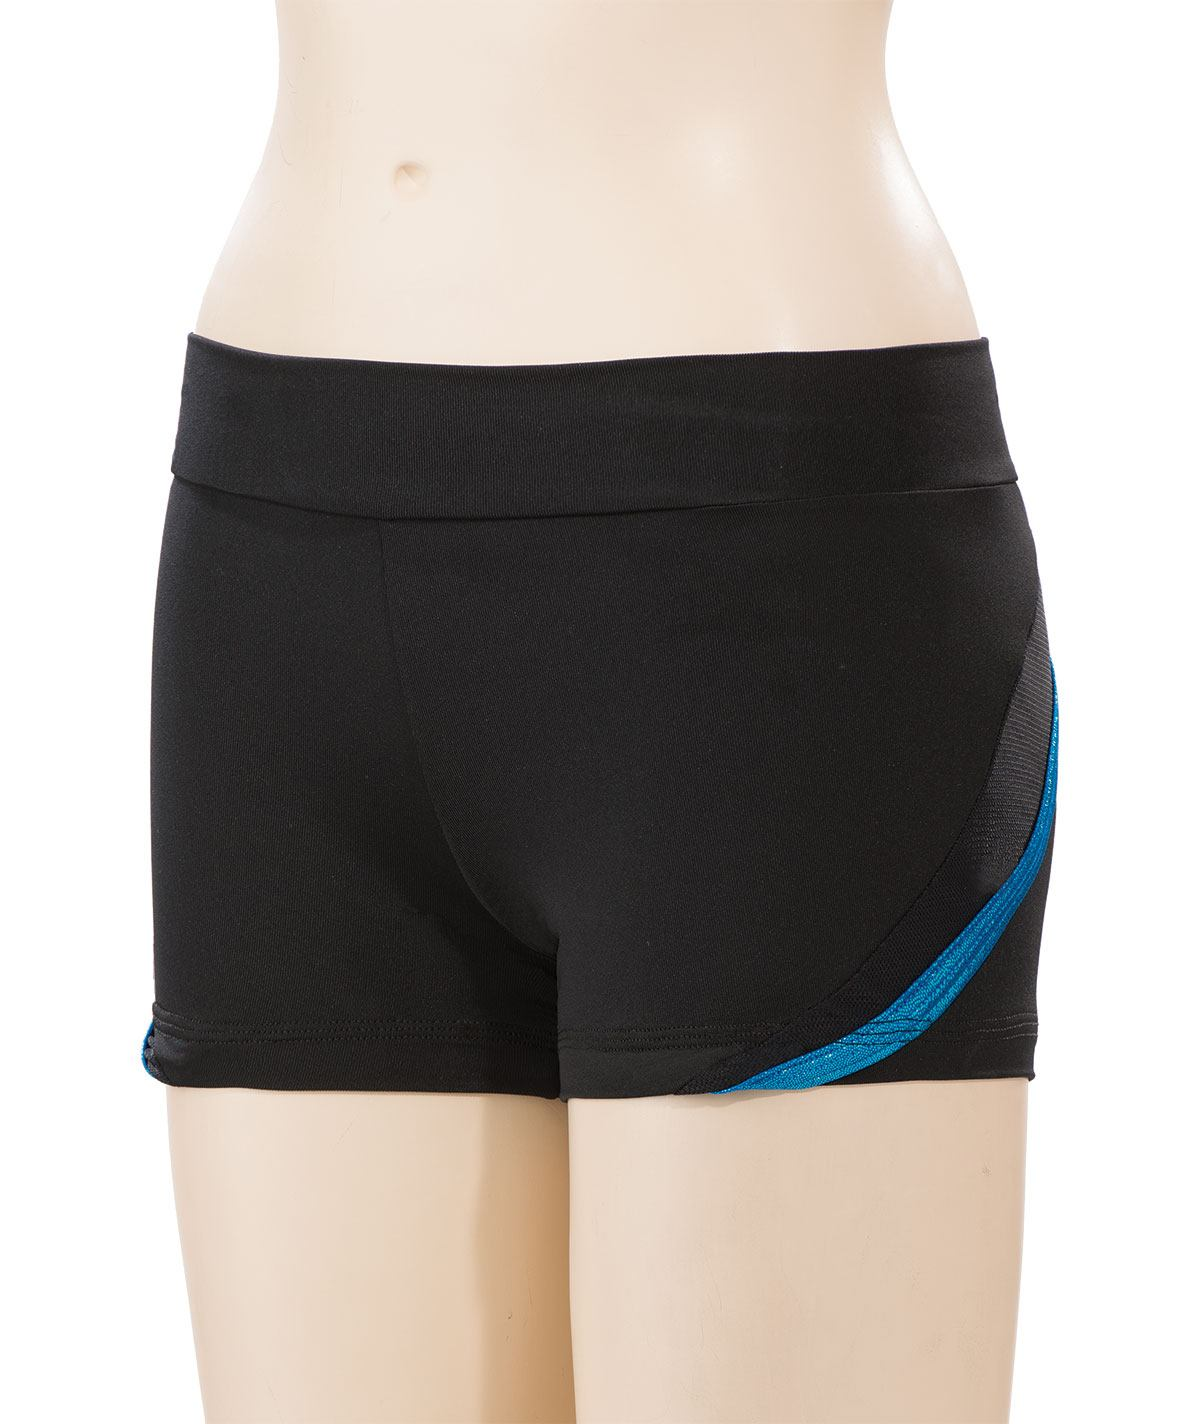 GK All Star Tech Mesh Accent Power Cheer Shorts